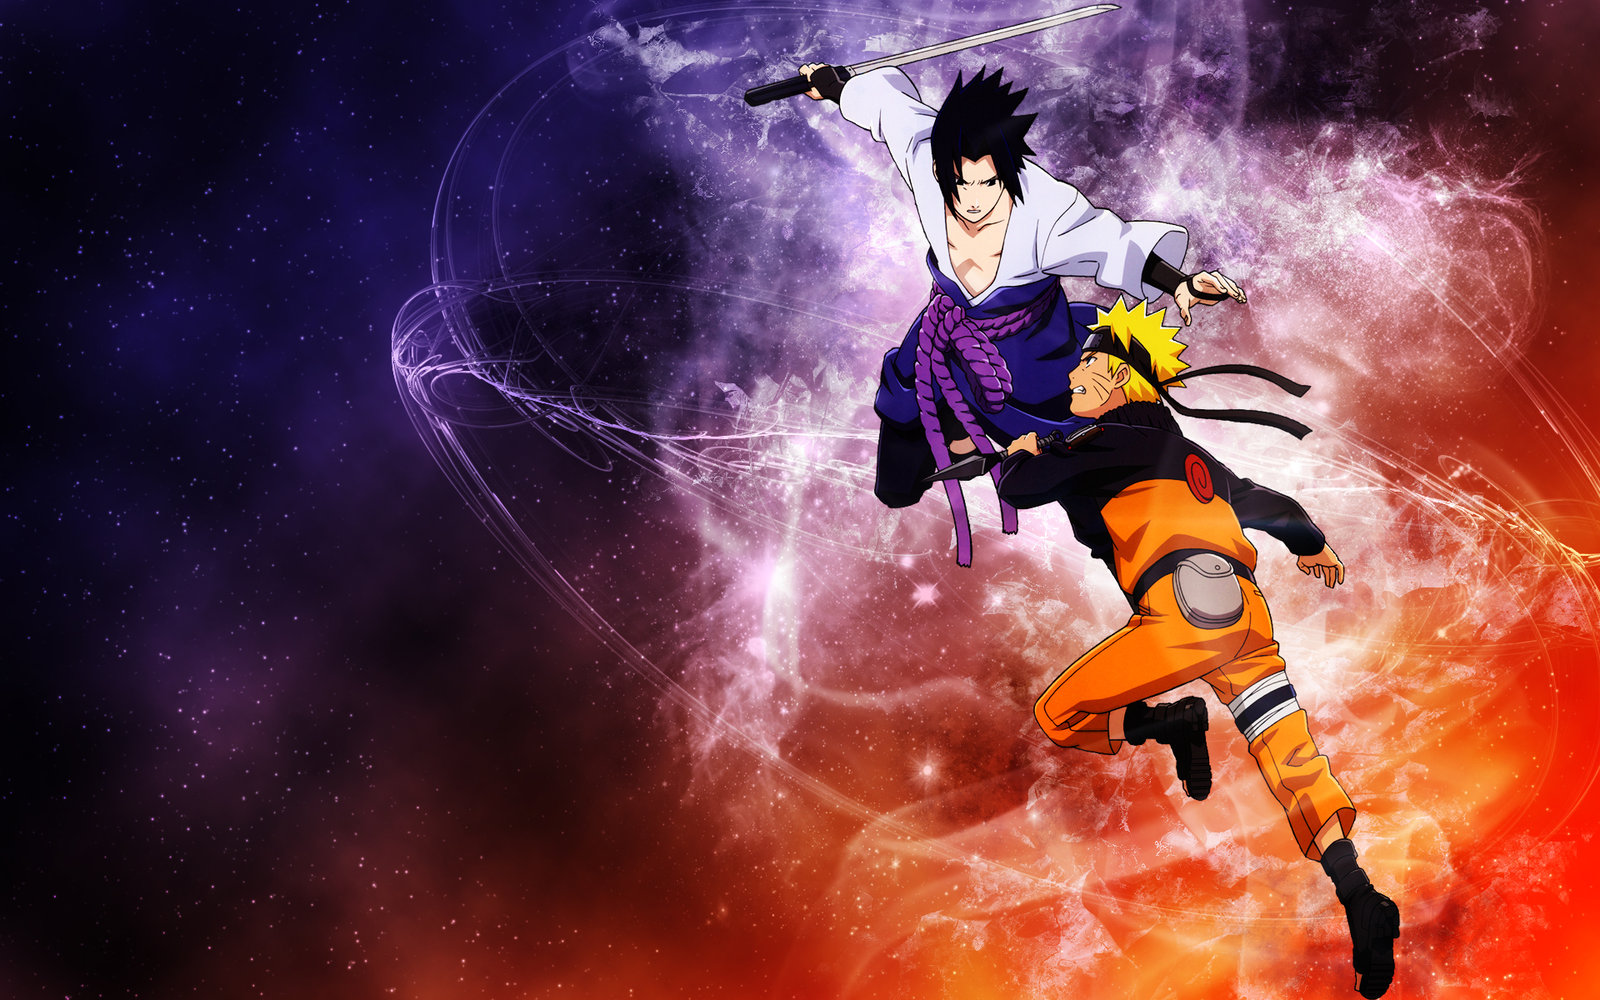 Imagenes de naruto y sasuke wallpapers 61 wallpapers - Image de narouto ...